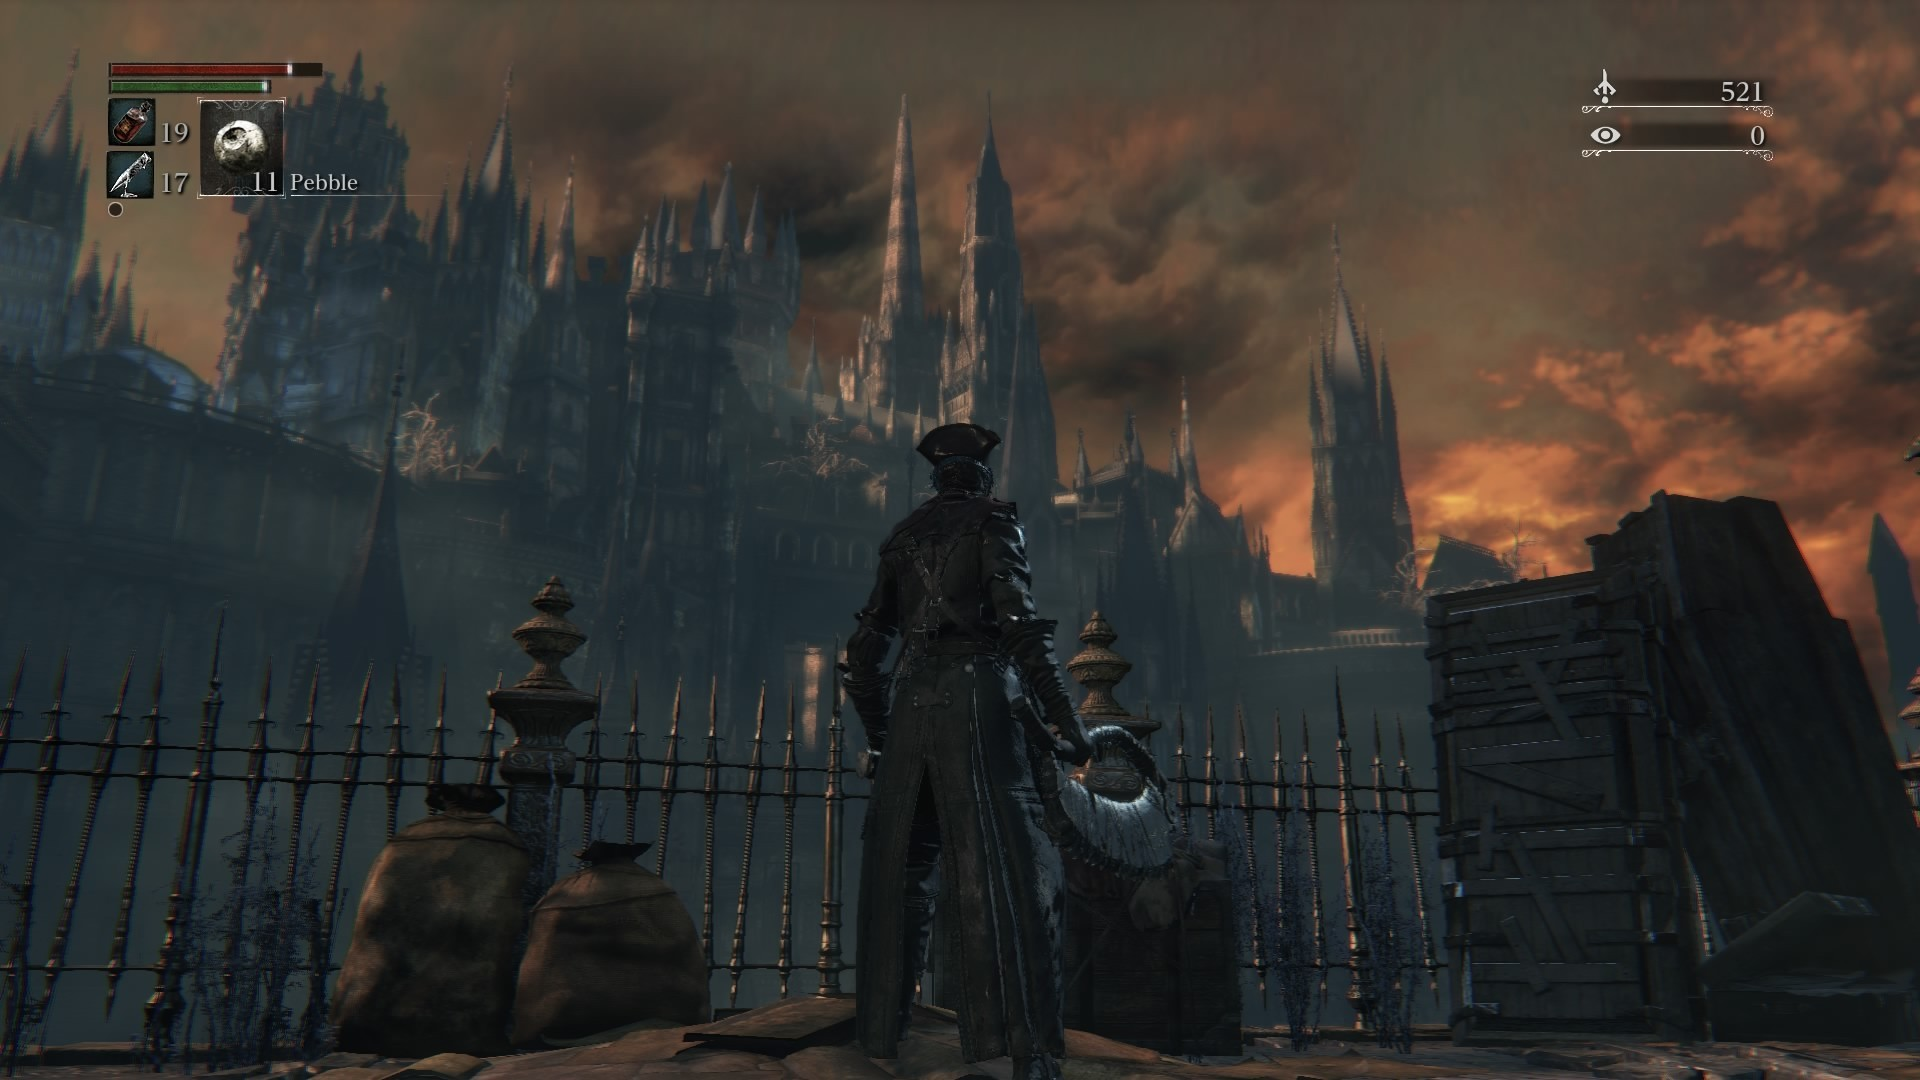 Multiplayer matchmaking patched bloodborne